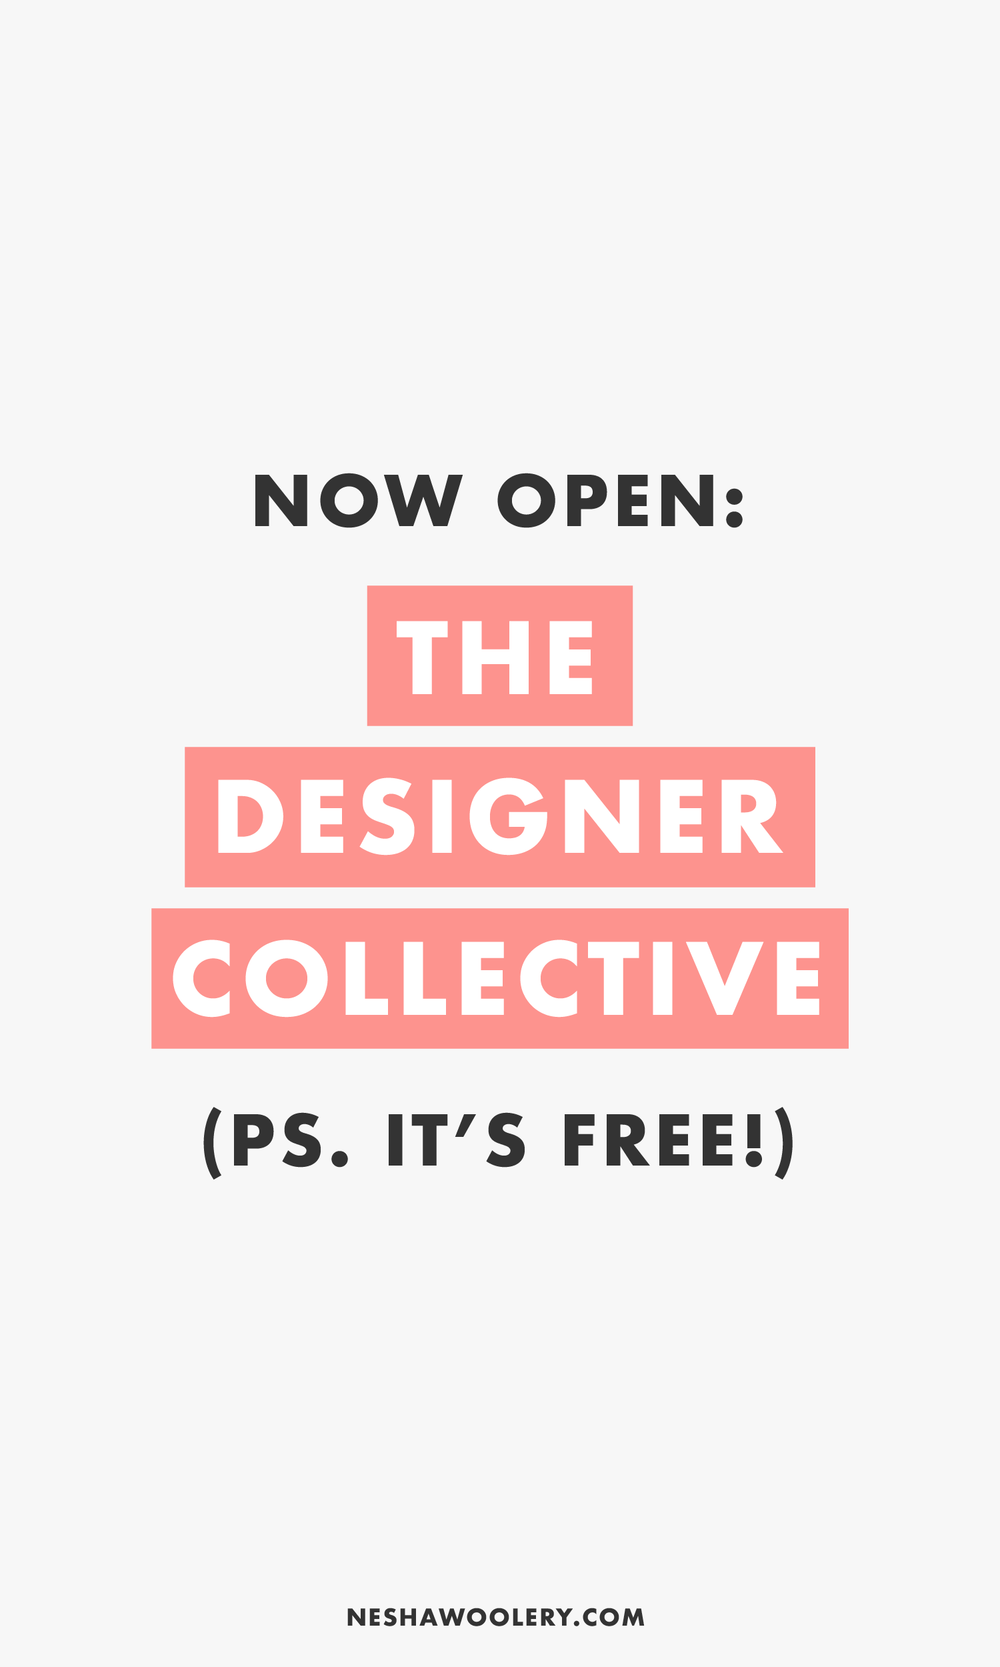 Want to make friends with other freelance designers? Come and join us in The Designer Collective! It's a FREE Facebook community hosted by me (Nesha Woolery) where you can connect with other freelance designers and share love, support and friendship. Click through to join!